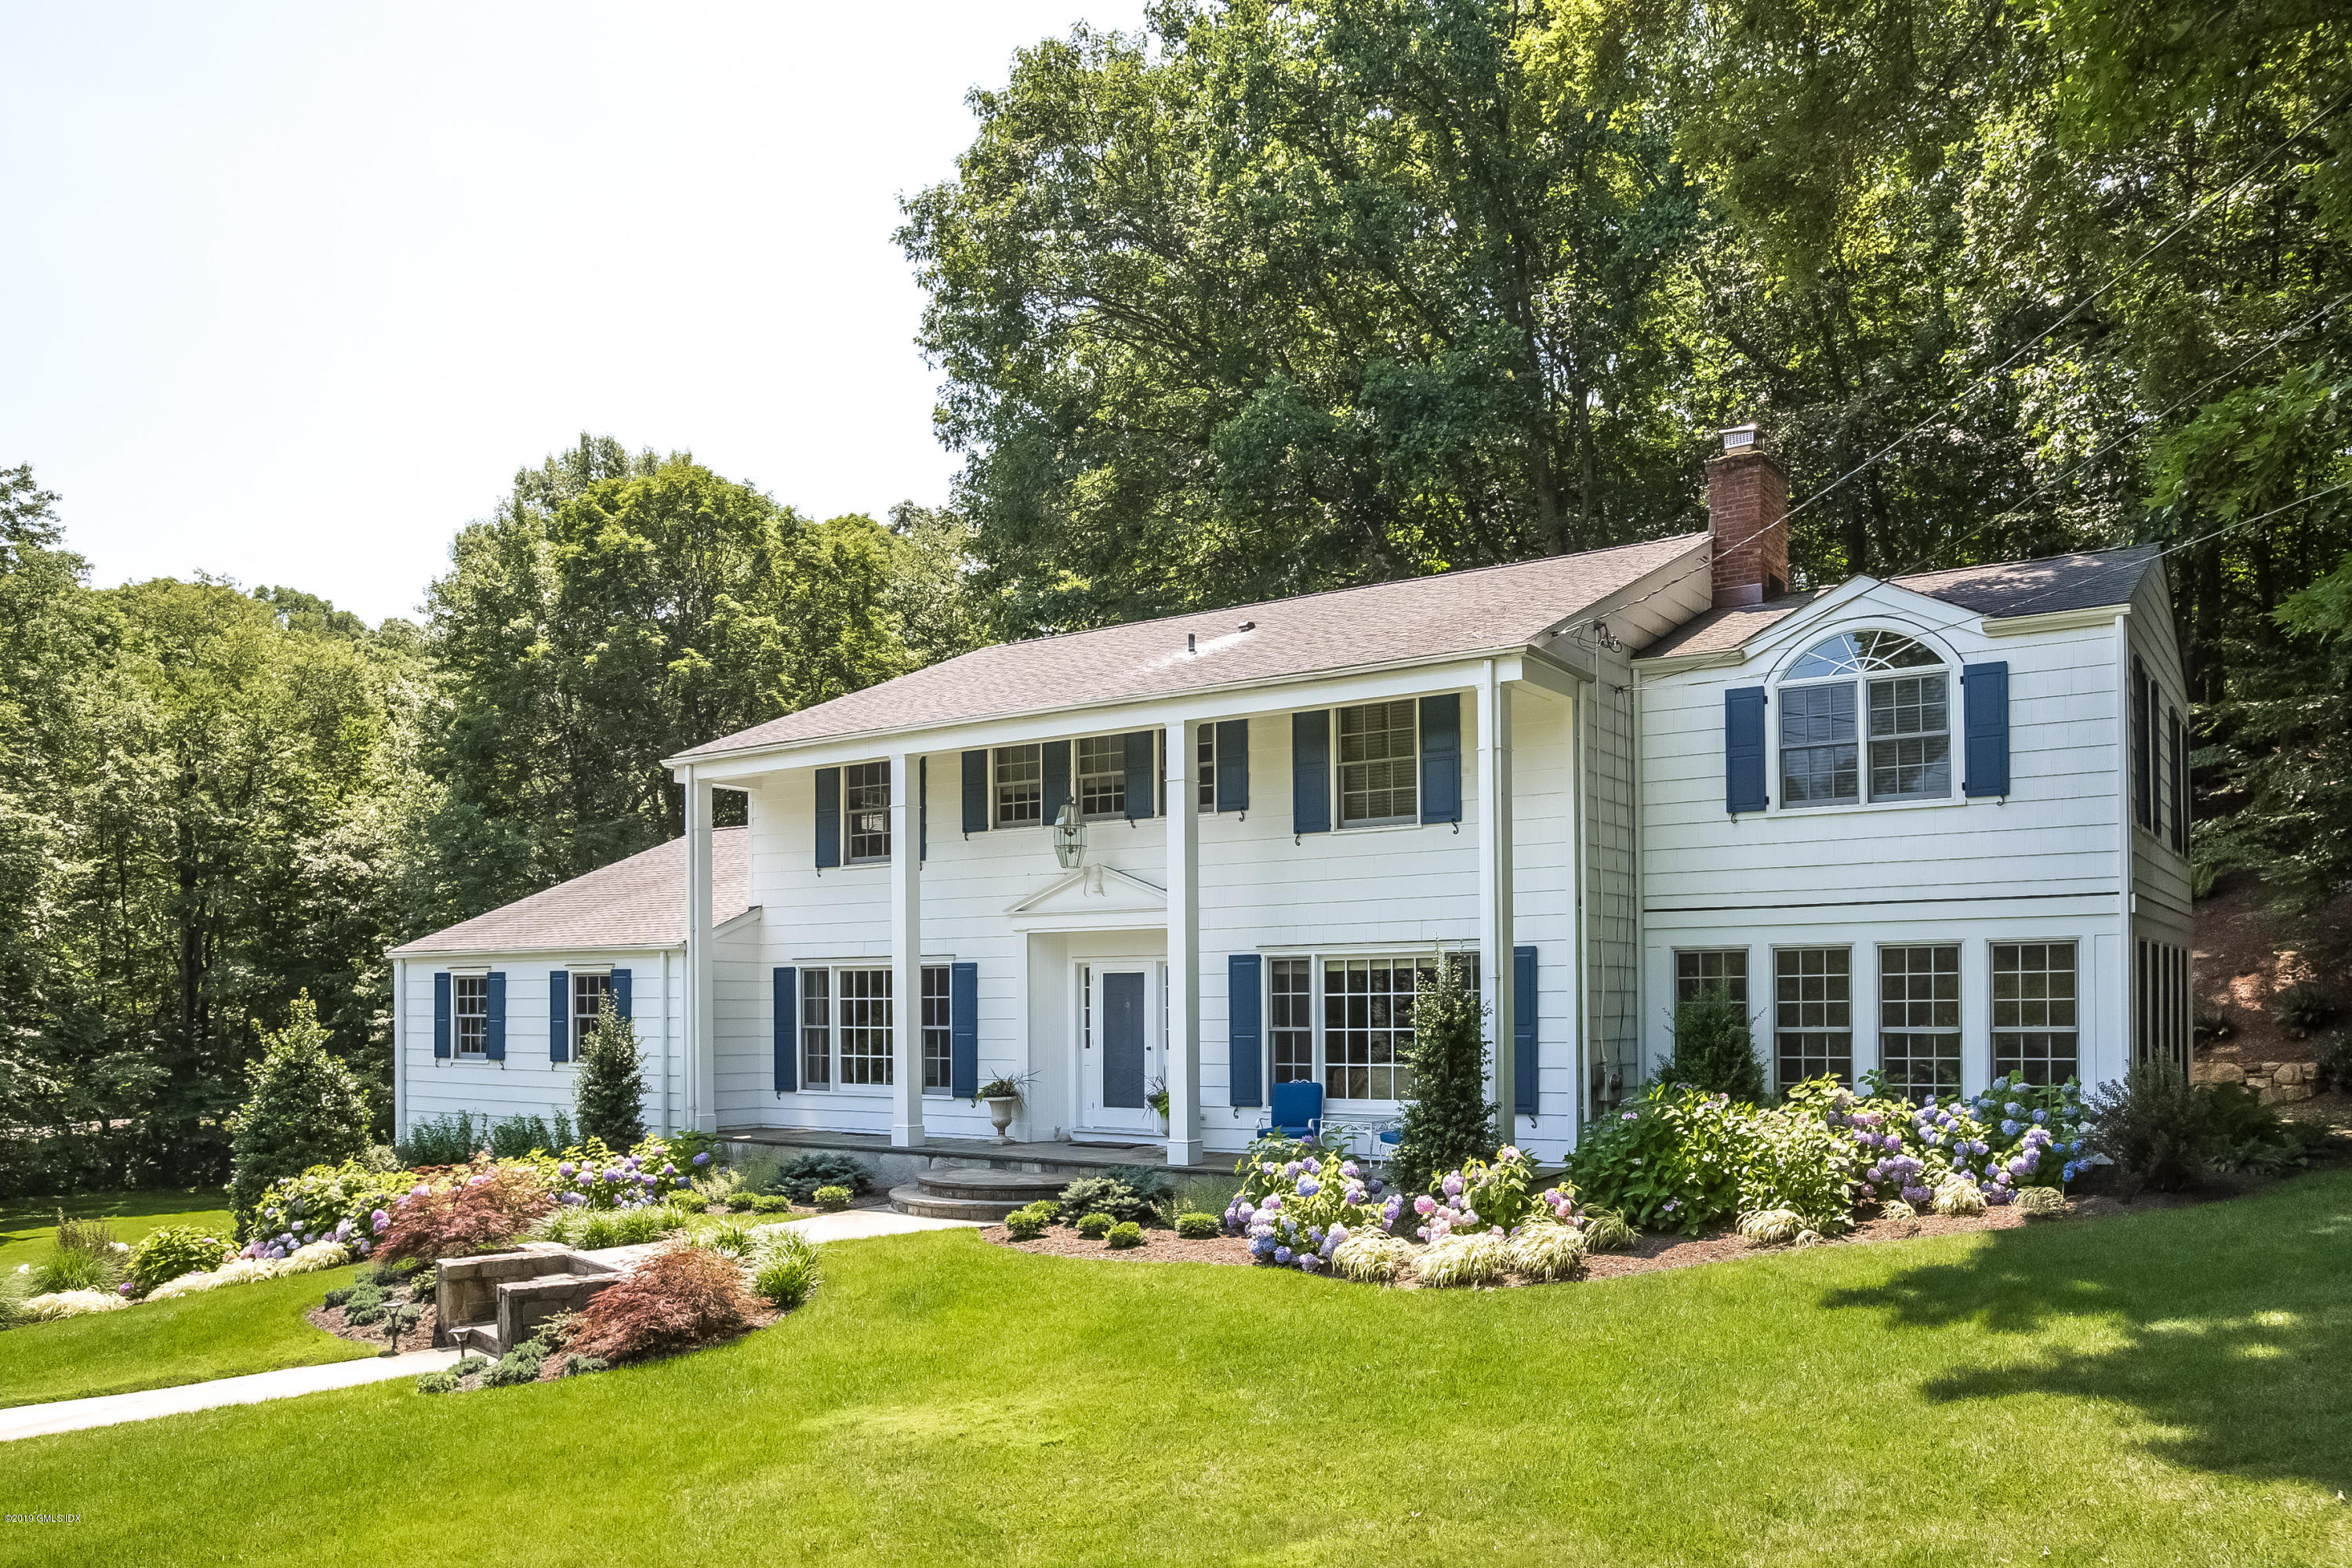 41 Frontier Road,Cos Cob,Connecticut 06807,5 Bedrooms Bedrooms,3 BathroomsBathrooms,Single family,Frontier,105538